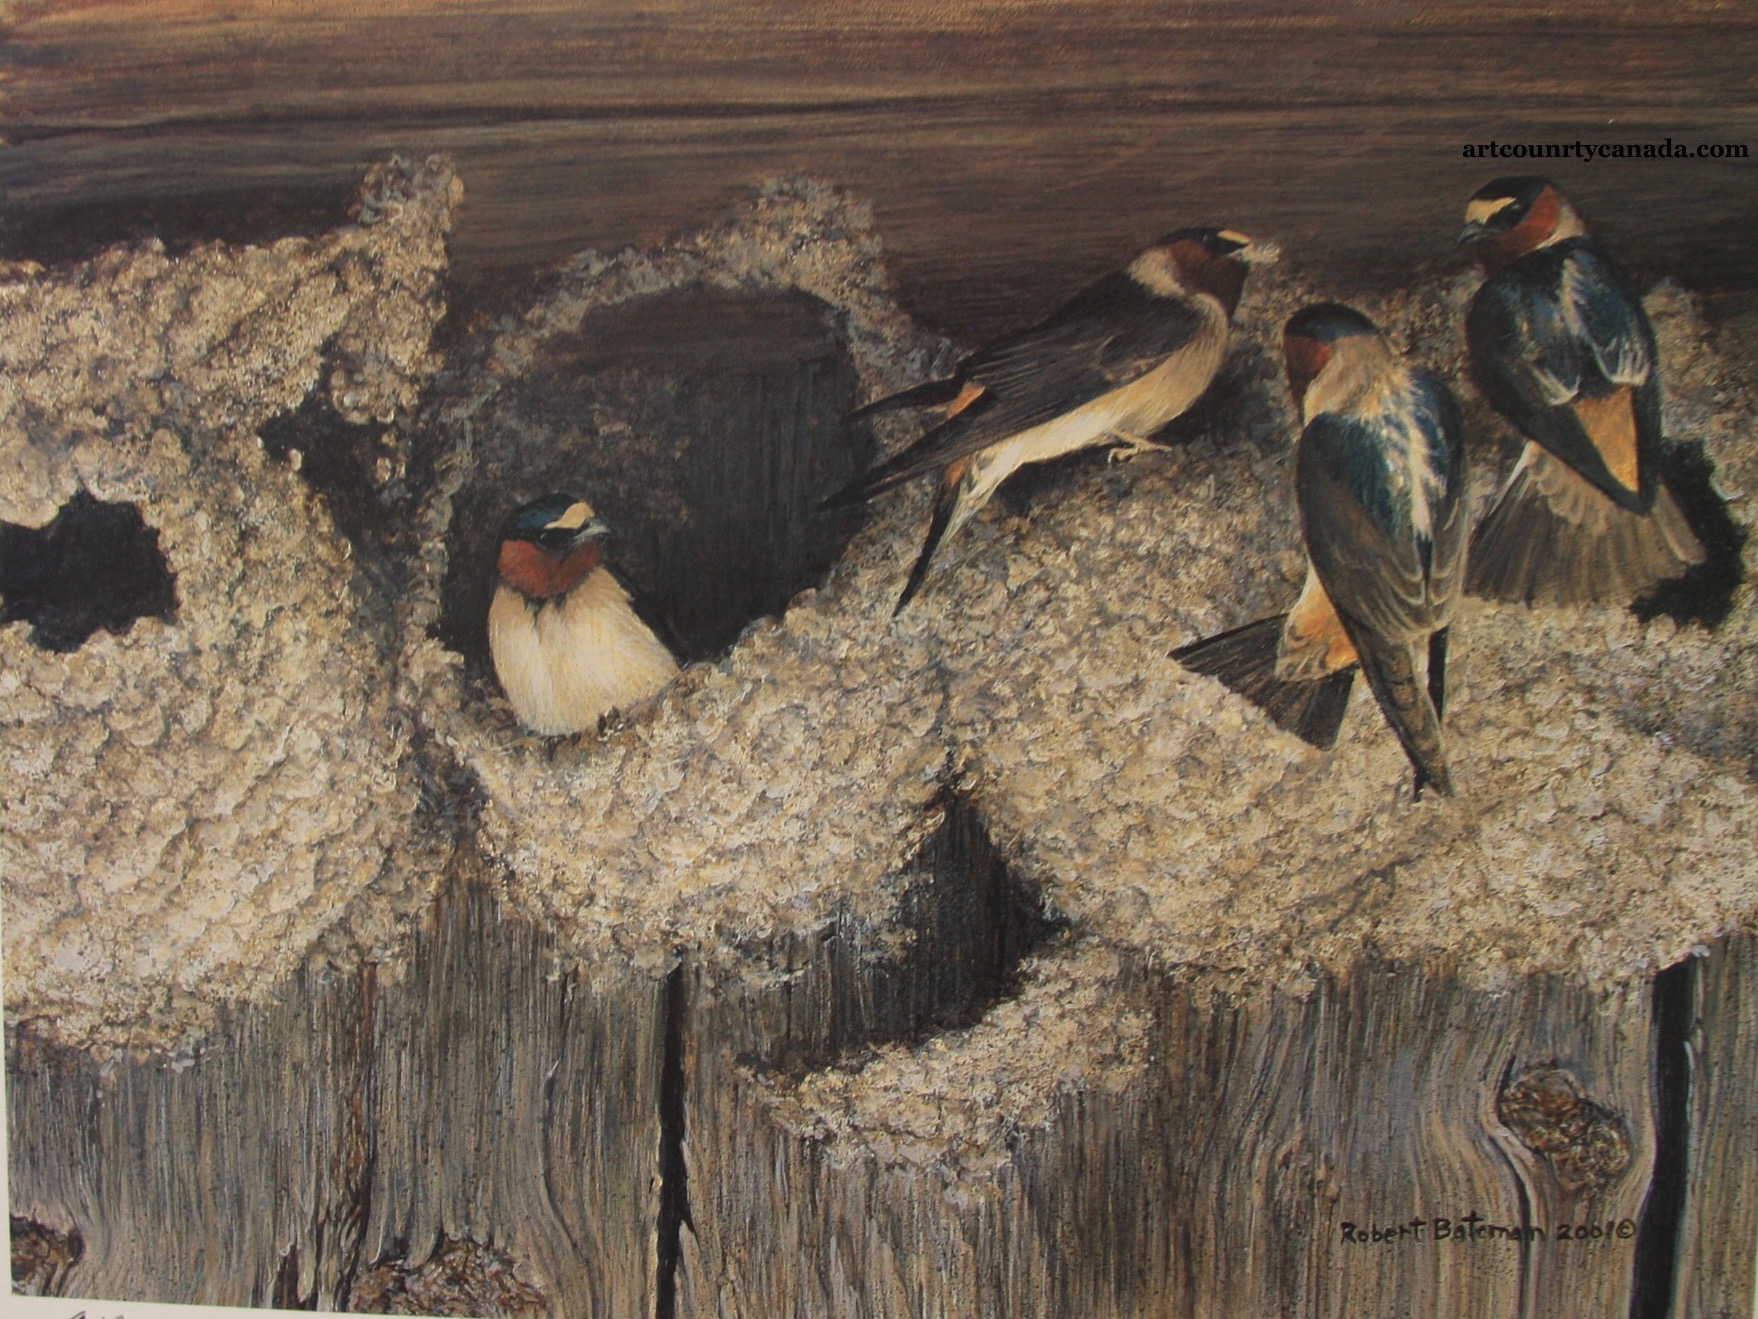 Robert Bateman Under Construction Cliff Swallows